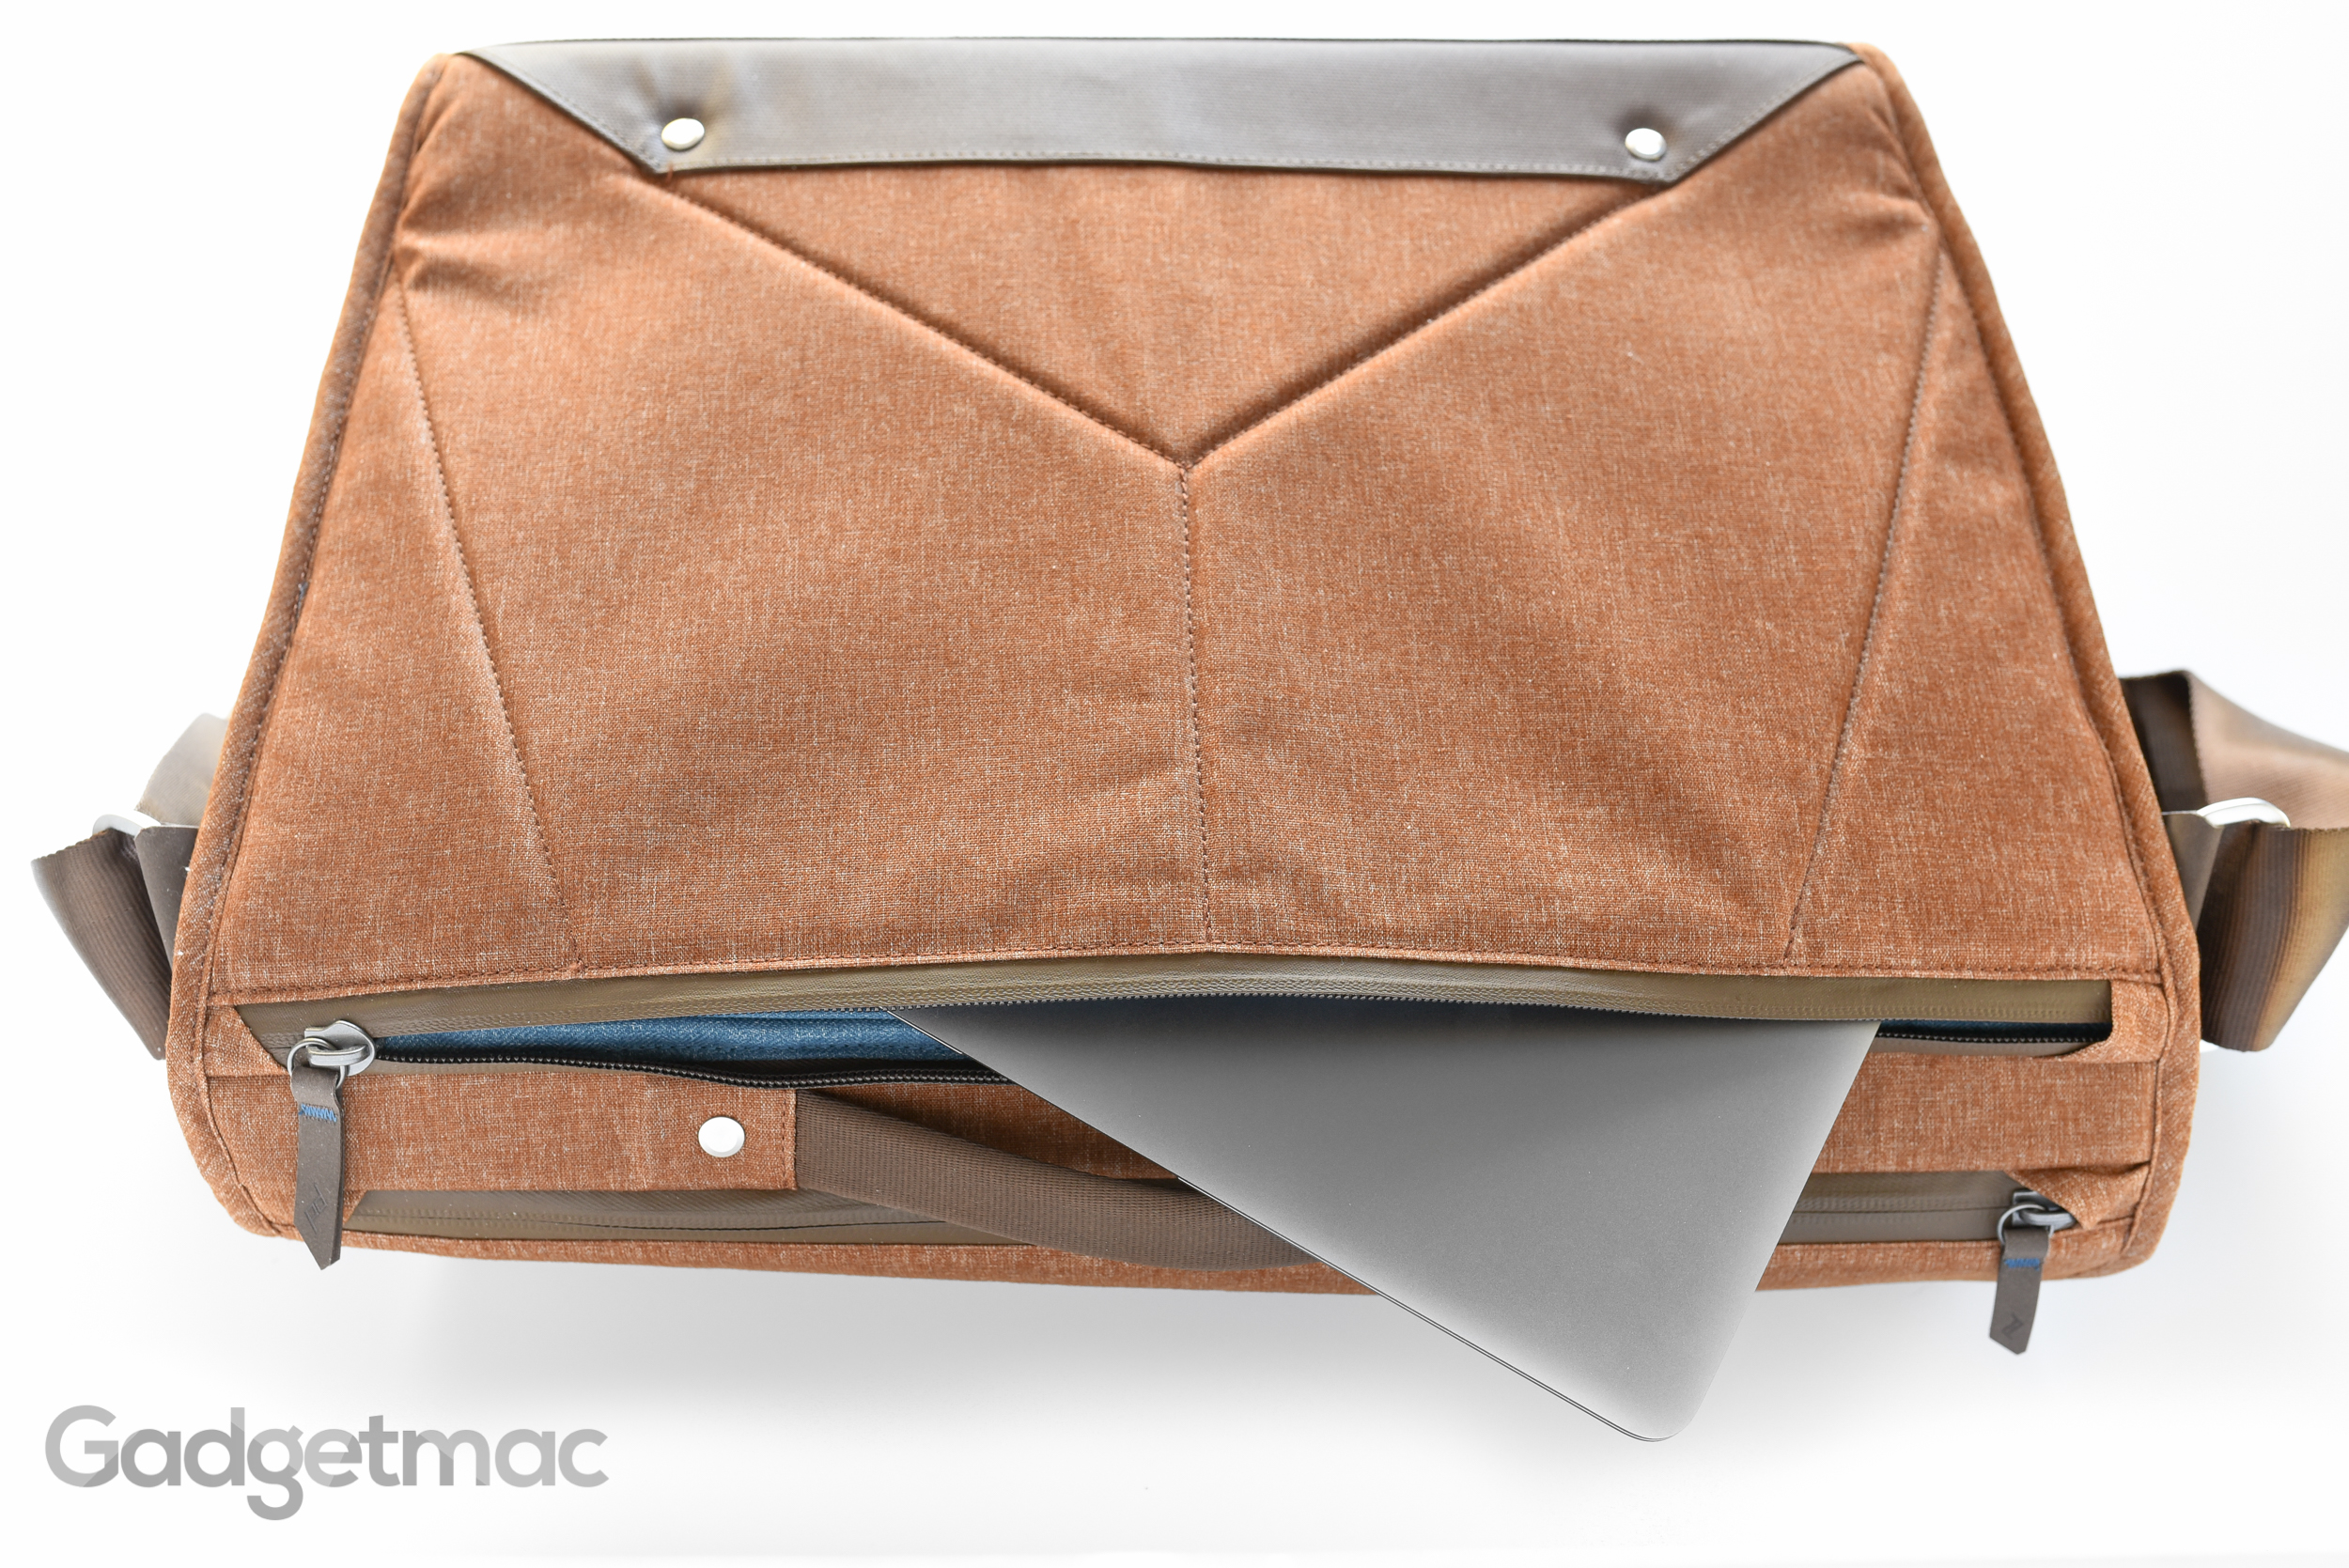 peak-design-the-everyday-messenger-laptop-ipad-camera-gear-bag.jpg